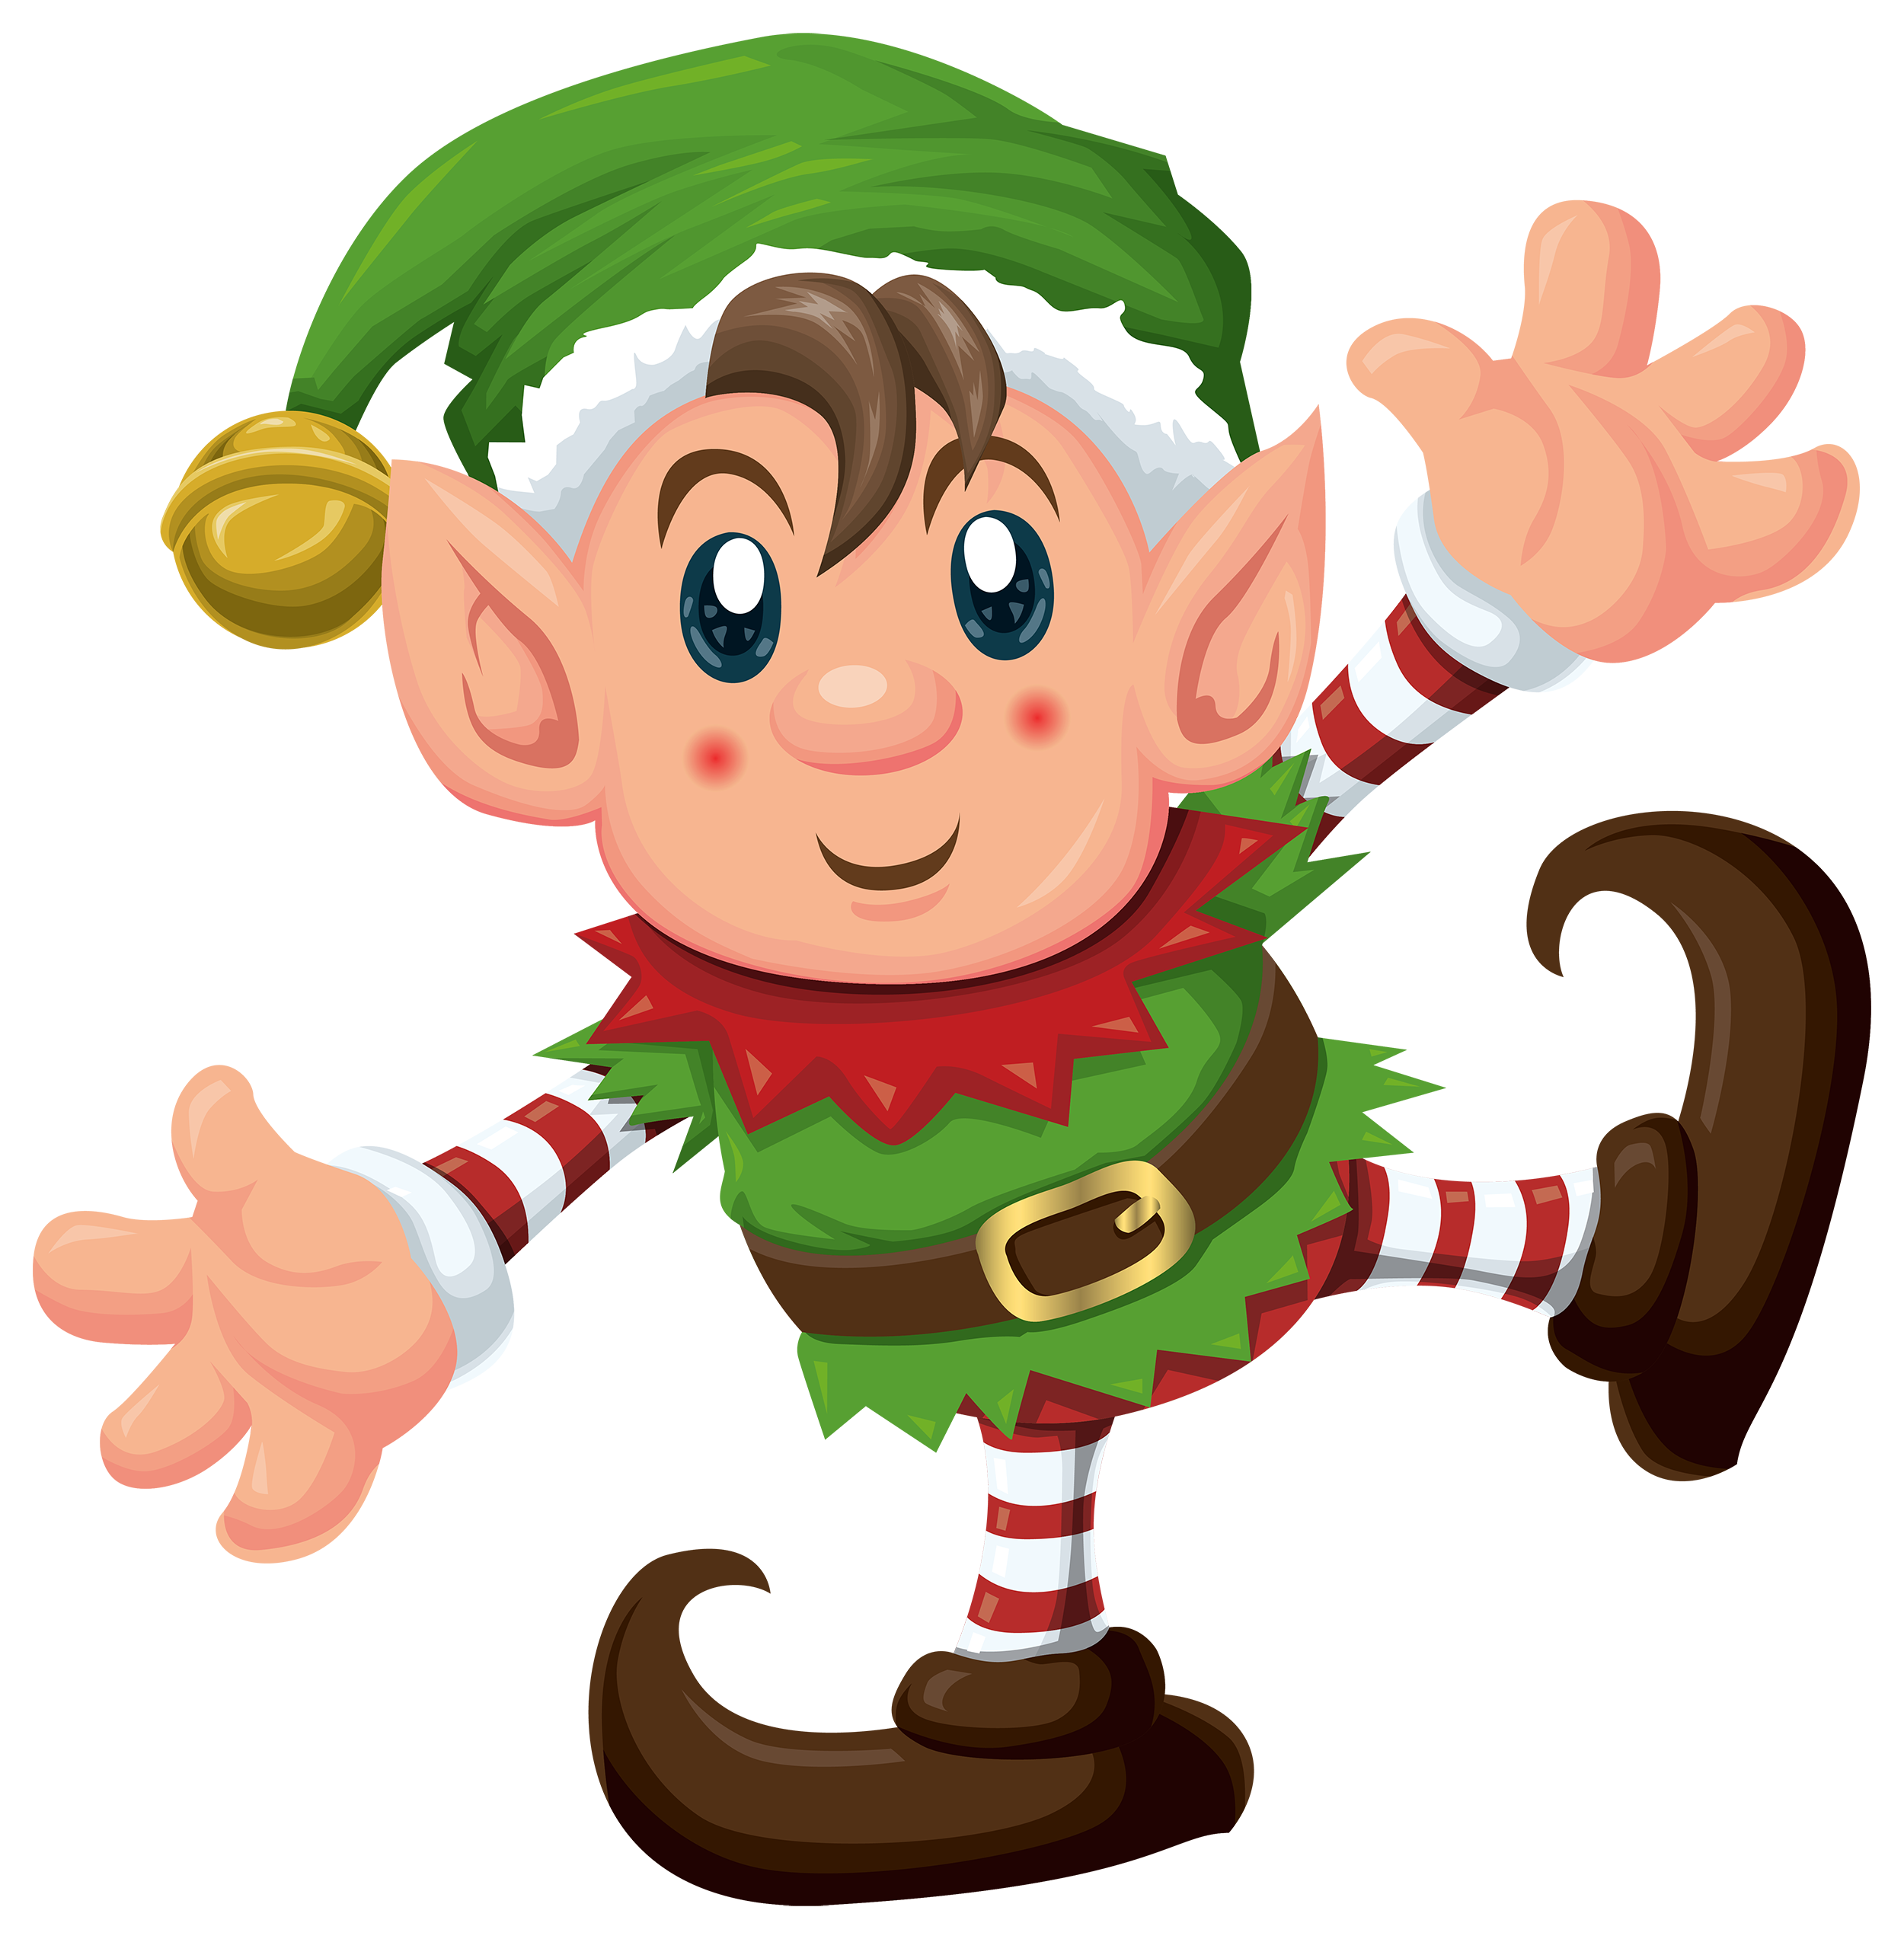 Elf clipart dancing. Graphics group cute png